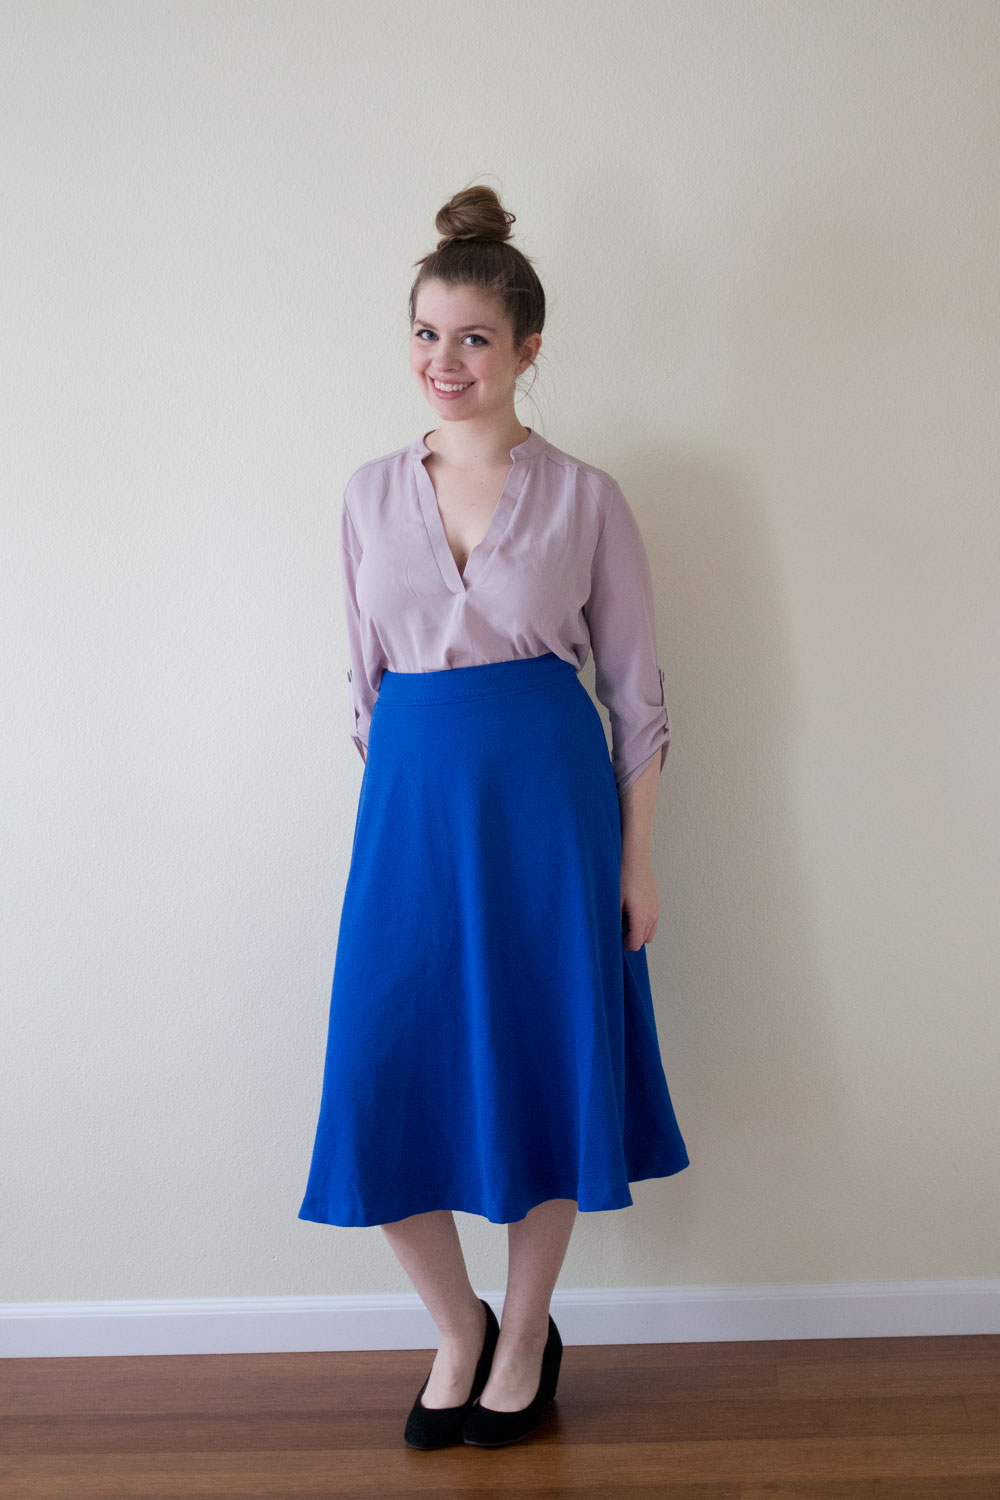 J.O.A. Classic A-Line Skirt / DailyLook Elite Box April 2015 Review & Styling / hellorigby seattle fashion and lifestyle blog